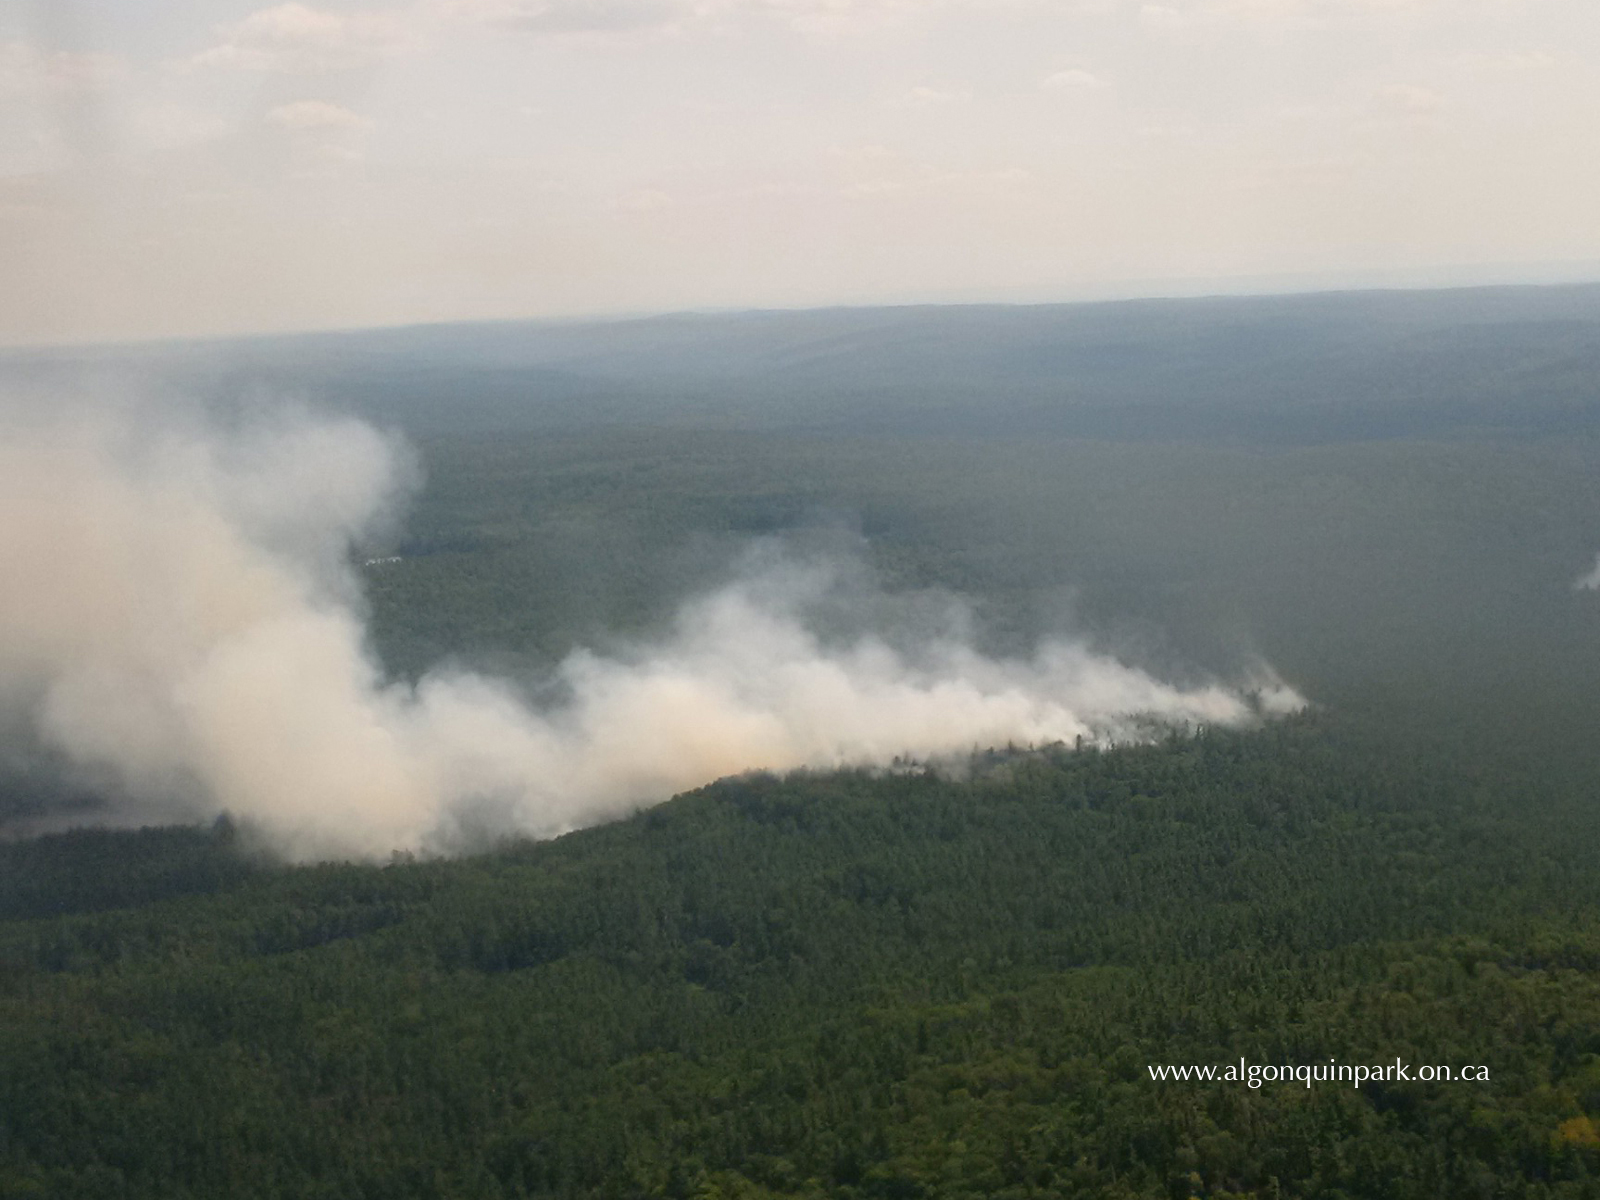 Photo: Algonquin Park - 30 Hector Fire in the forest surrounding High Falls Lake which was created by humans. Taken on August 10th 2016. Read more about it here